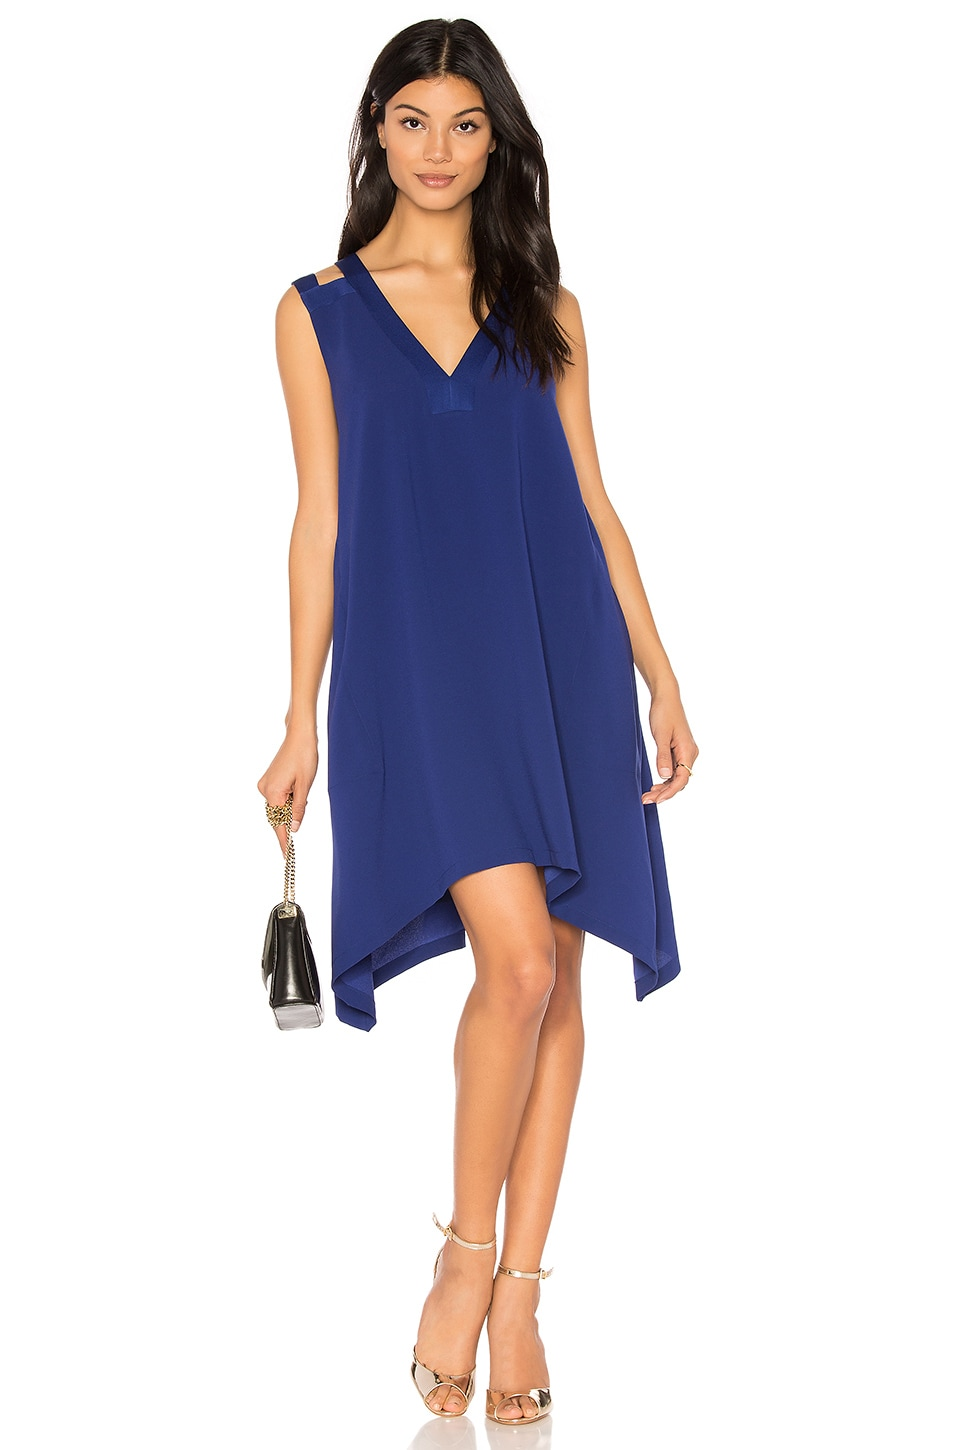 BCBGMAXAZRIA Michele Dress in Deep Royal Blue